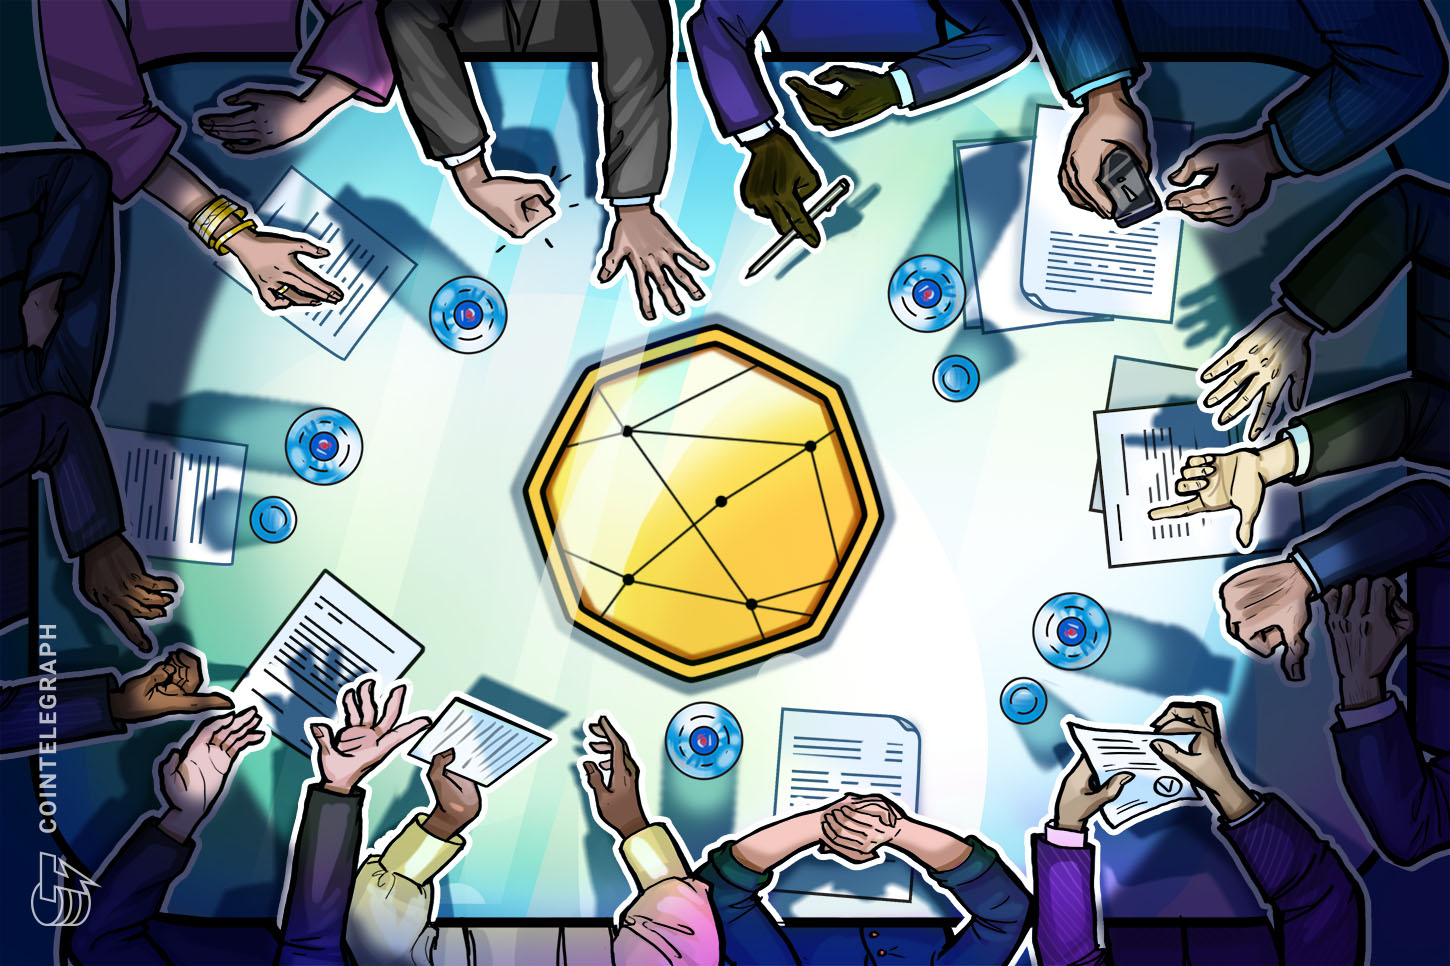 Crypto language in the infrastructure bill is a political shell game, says Cointelegraph GC